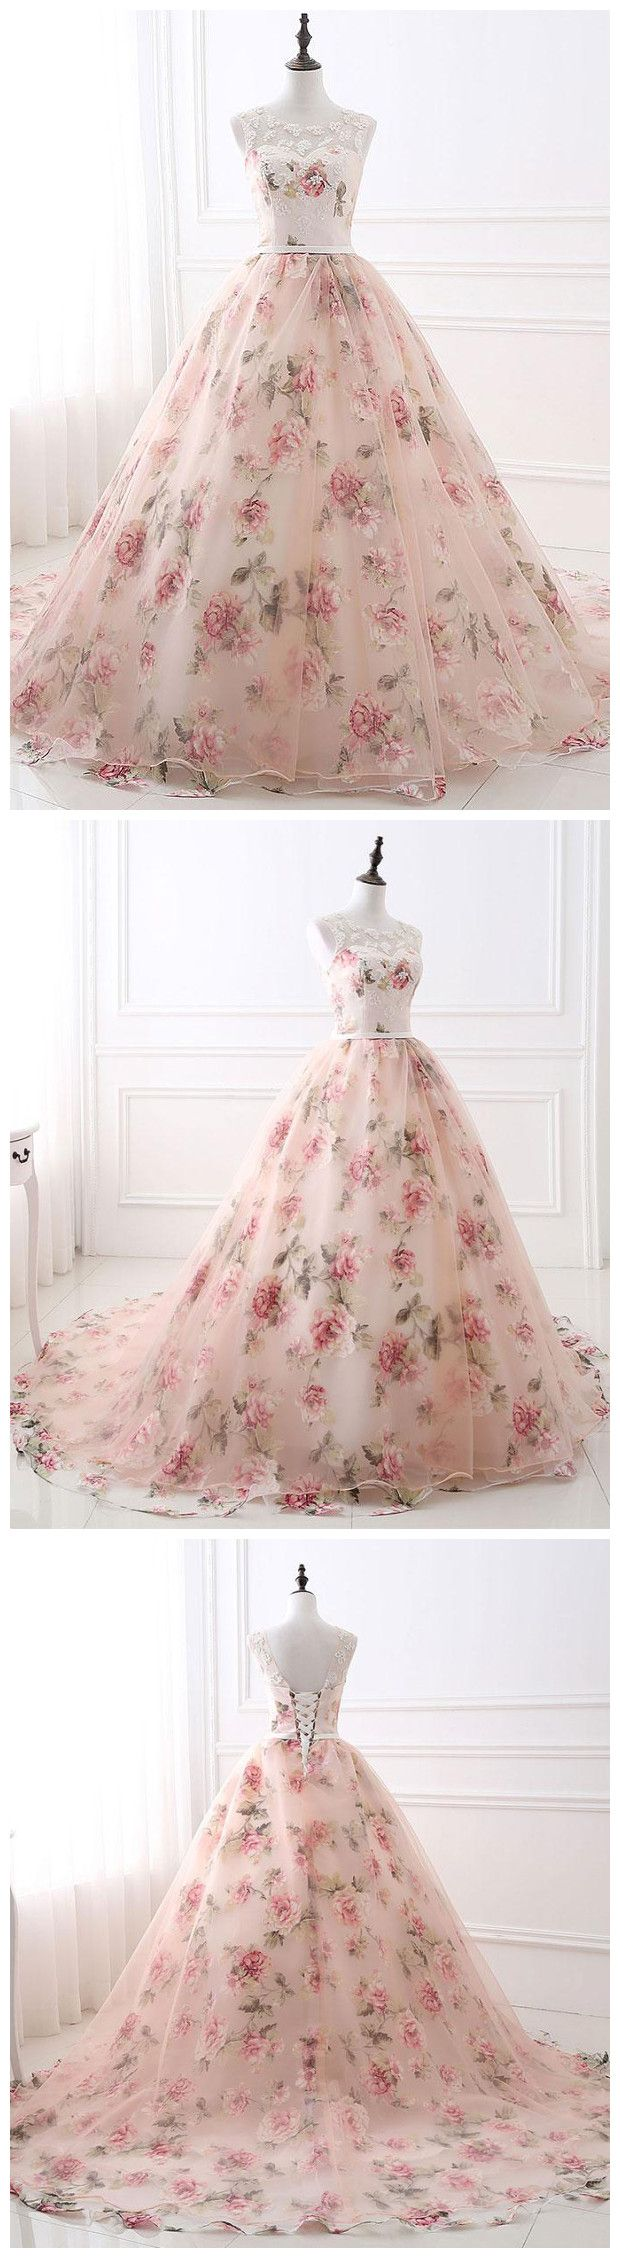 prom dresses modest,prom dresses long,prom dresses ball gown,prom dresses floral,prom dresses cheap,beautiful prom dresses,prom dresses 2018,prom dresses unique,prom dresses a line #amyprom #longpromdress #fashion #love #party #formal